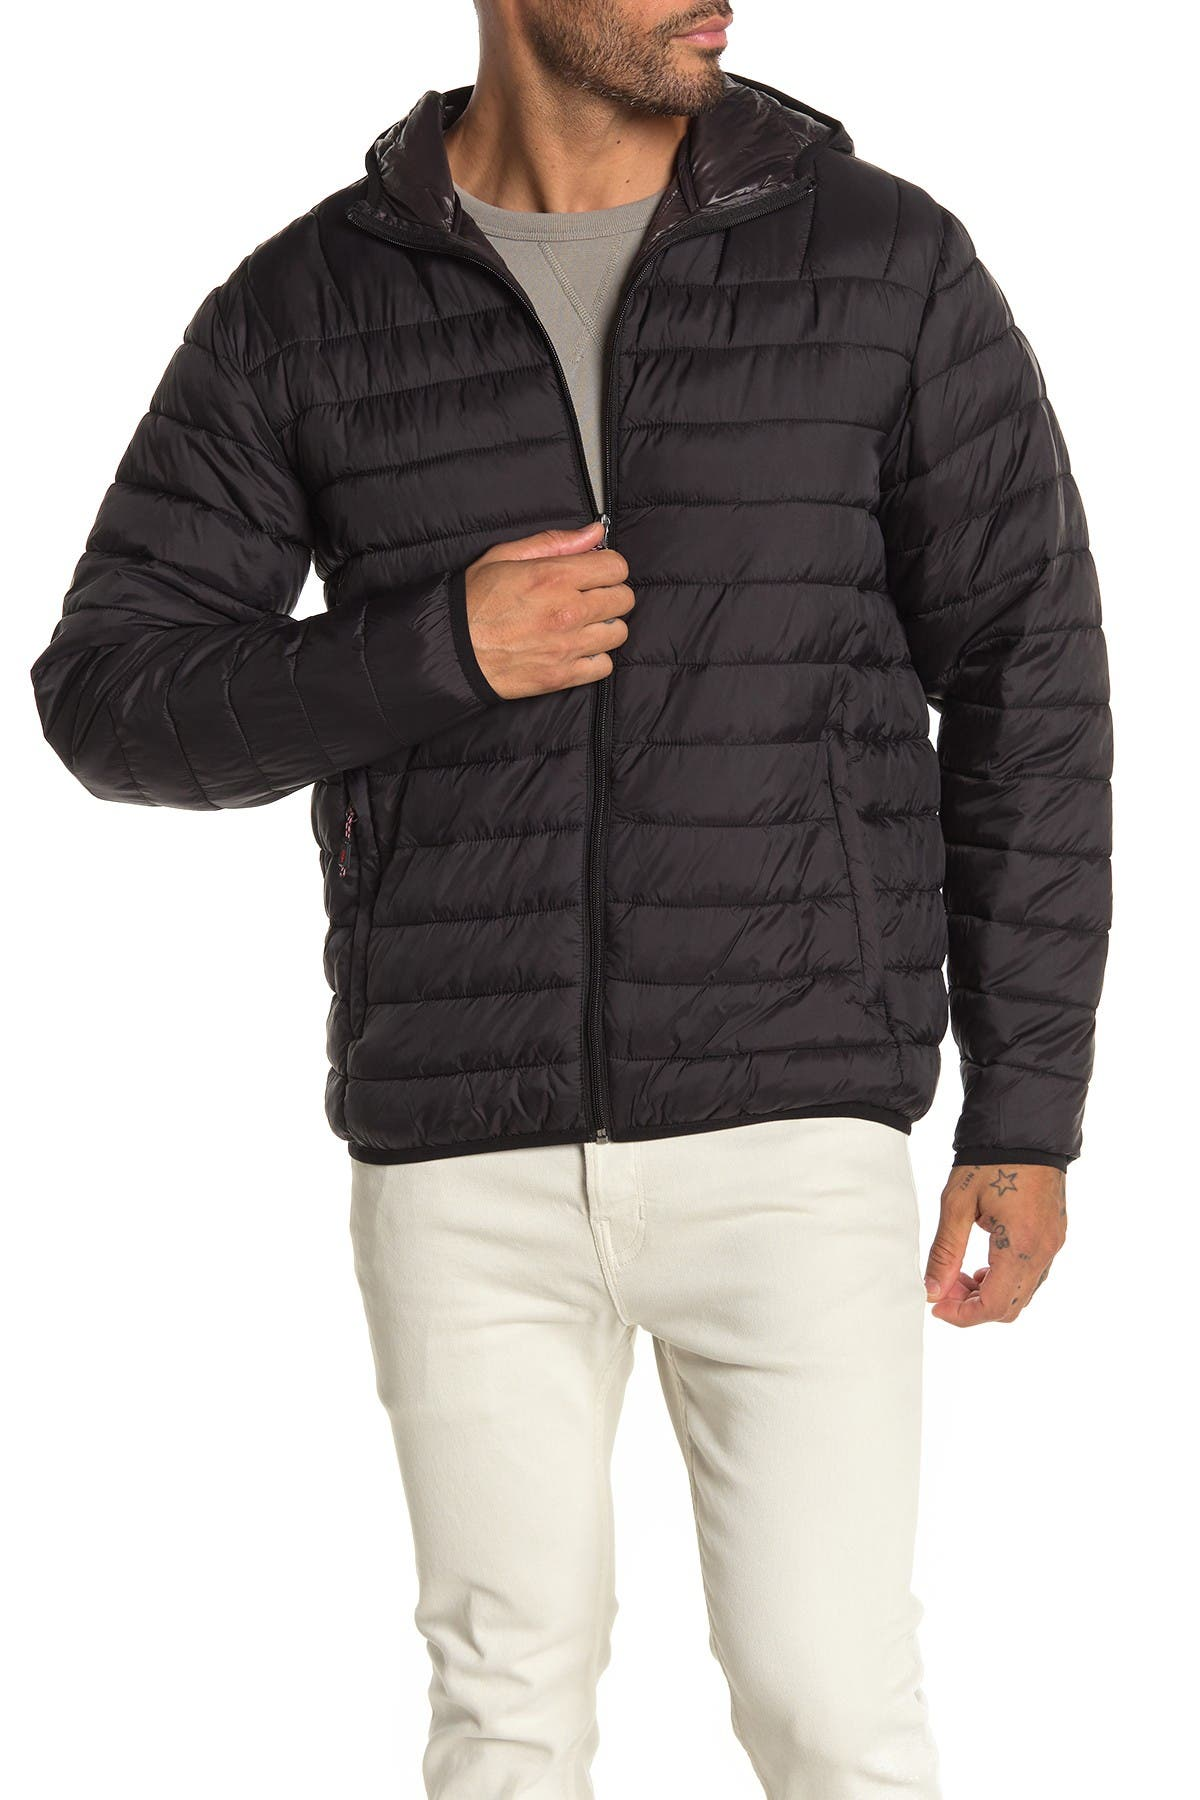 Image of Hawke & Co. Hooded Packable Down Jacket